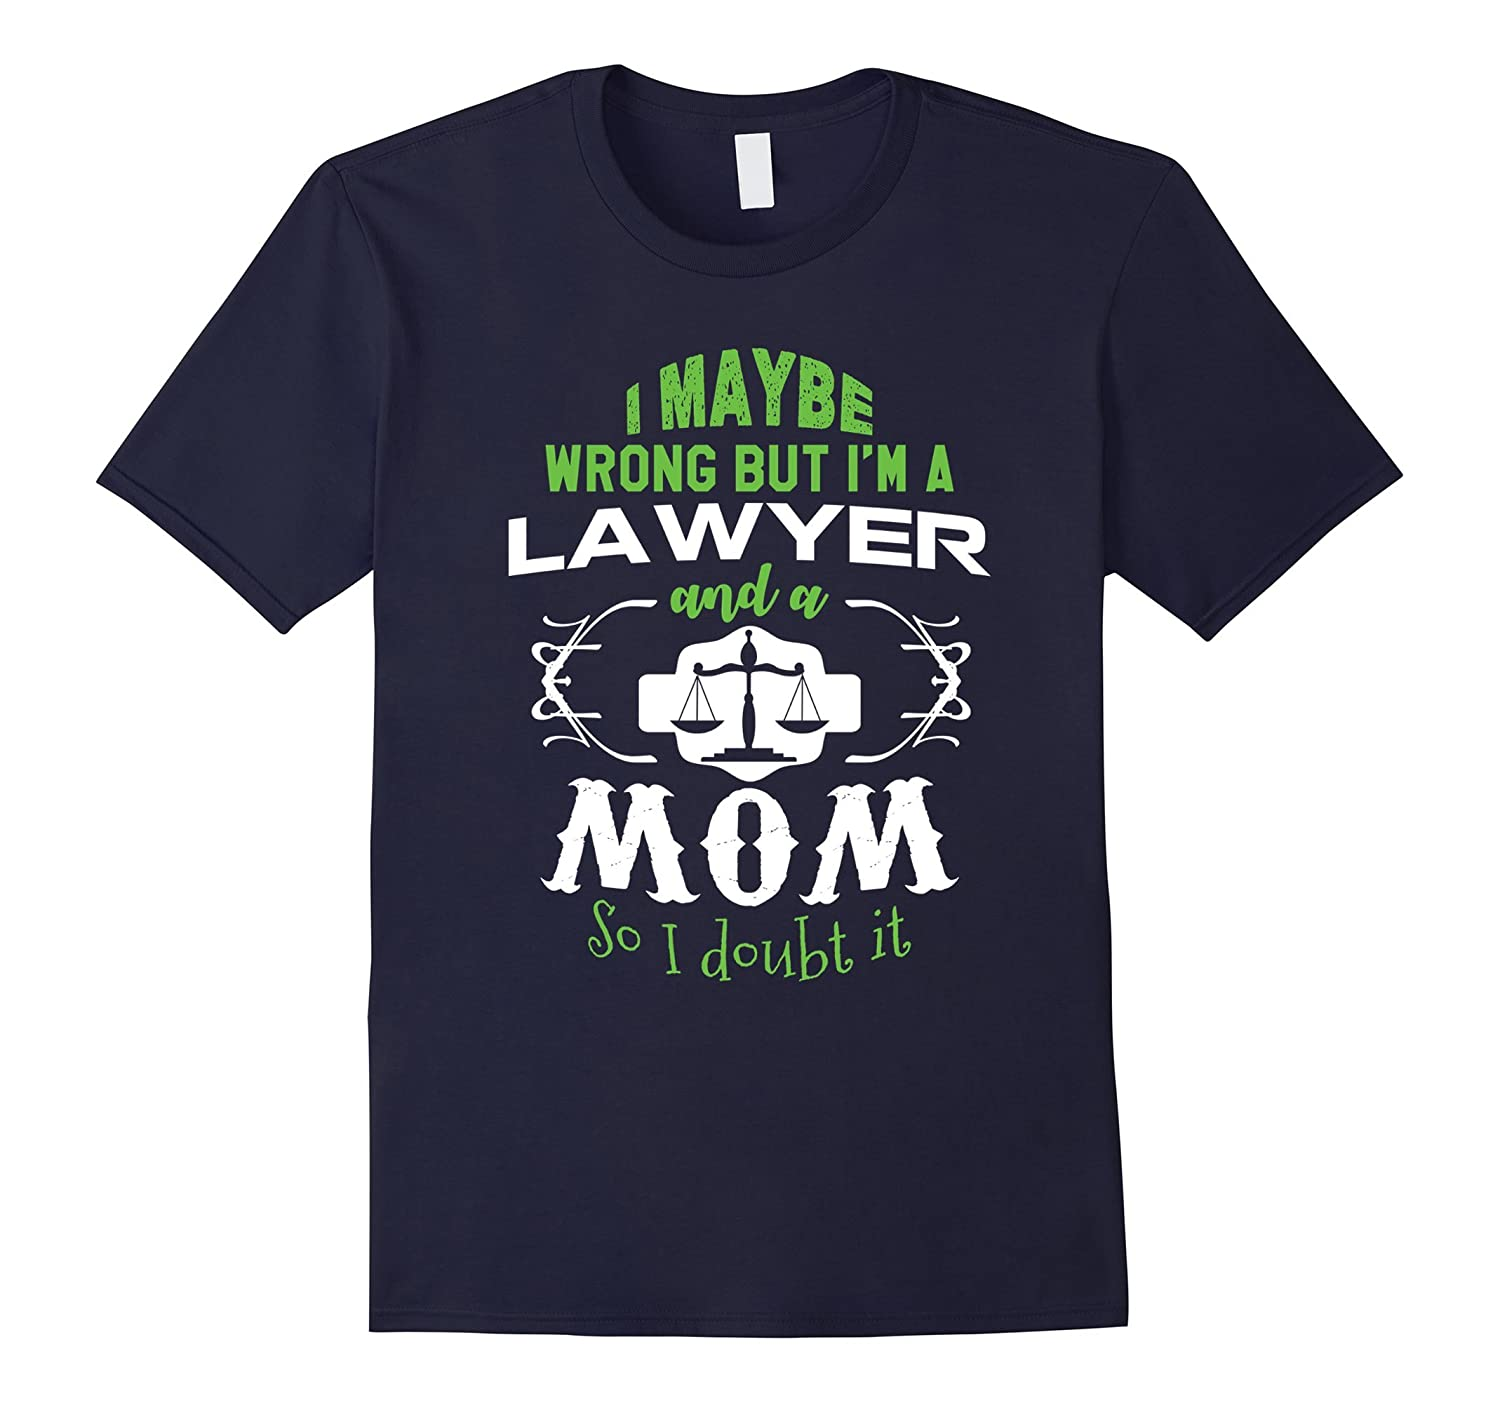 Lawyer Mother is Never Wrong Funny Family Tshirts for Women-TH